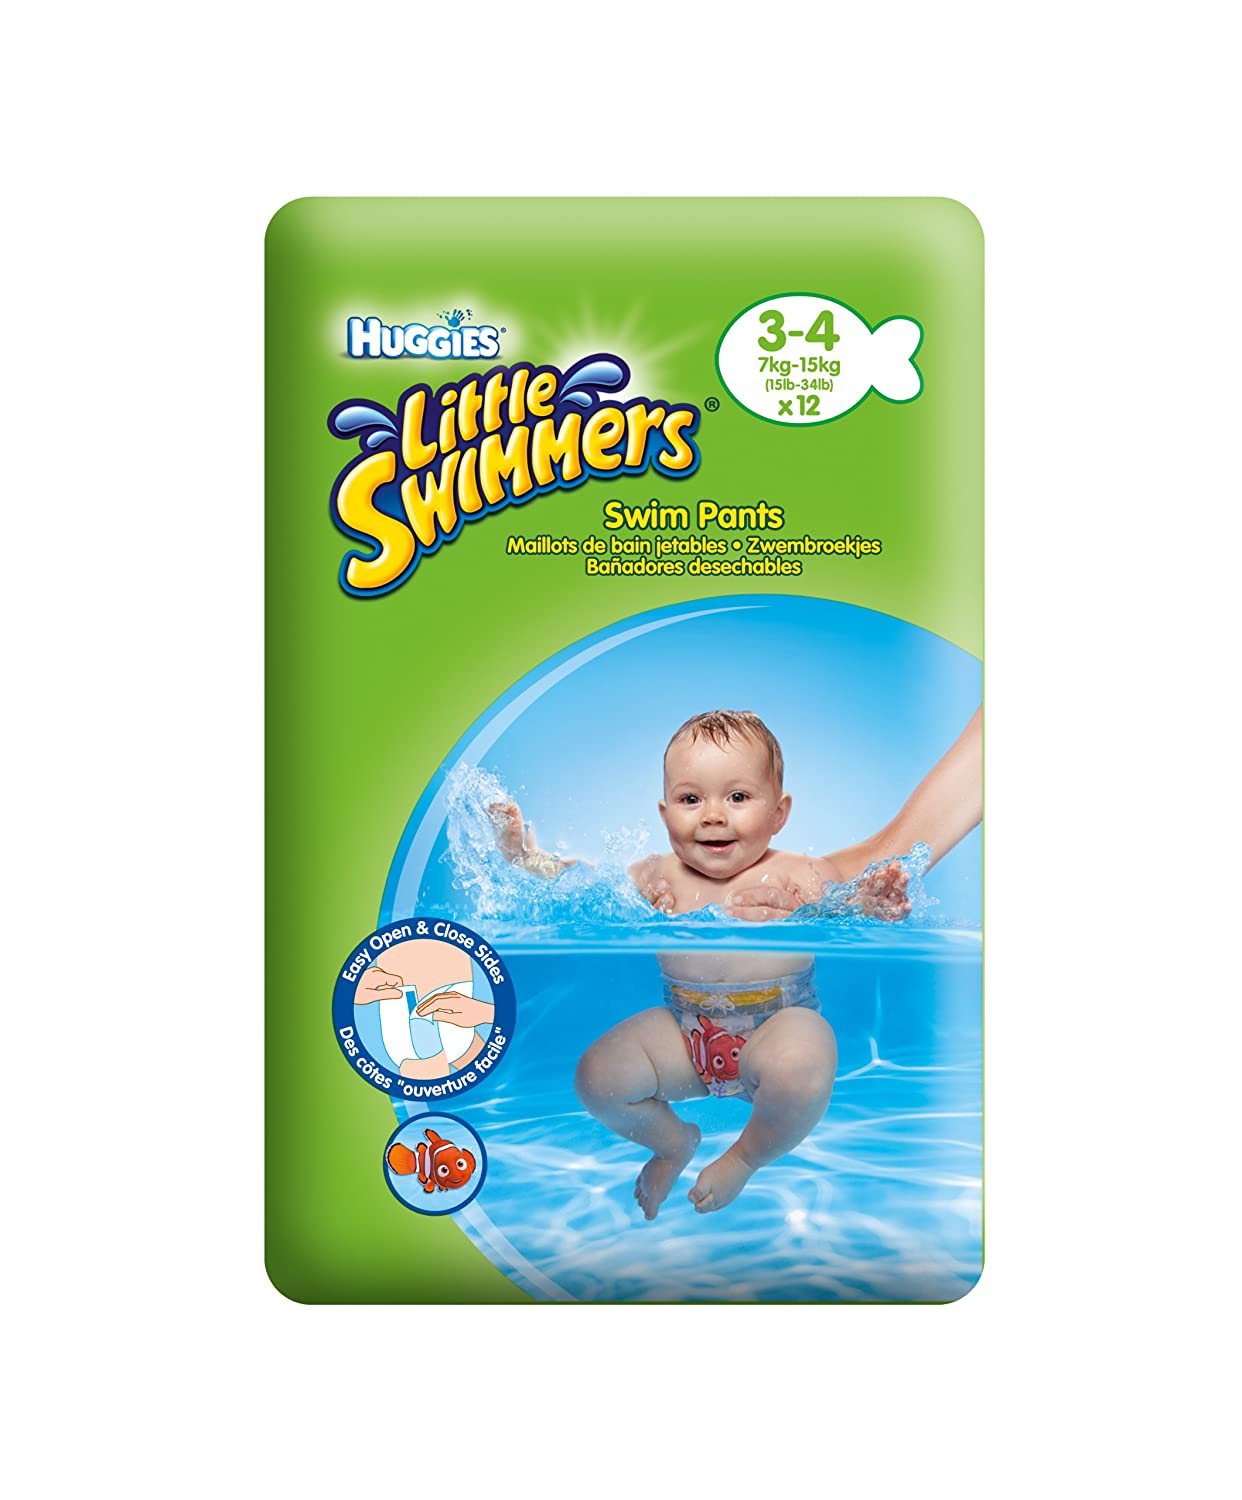 Huggies Little Swimmers Pants - Size 3-4, 3 x Packs of 12 (36 Pants) Kimberly-Clark 153499